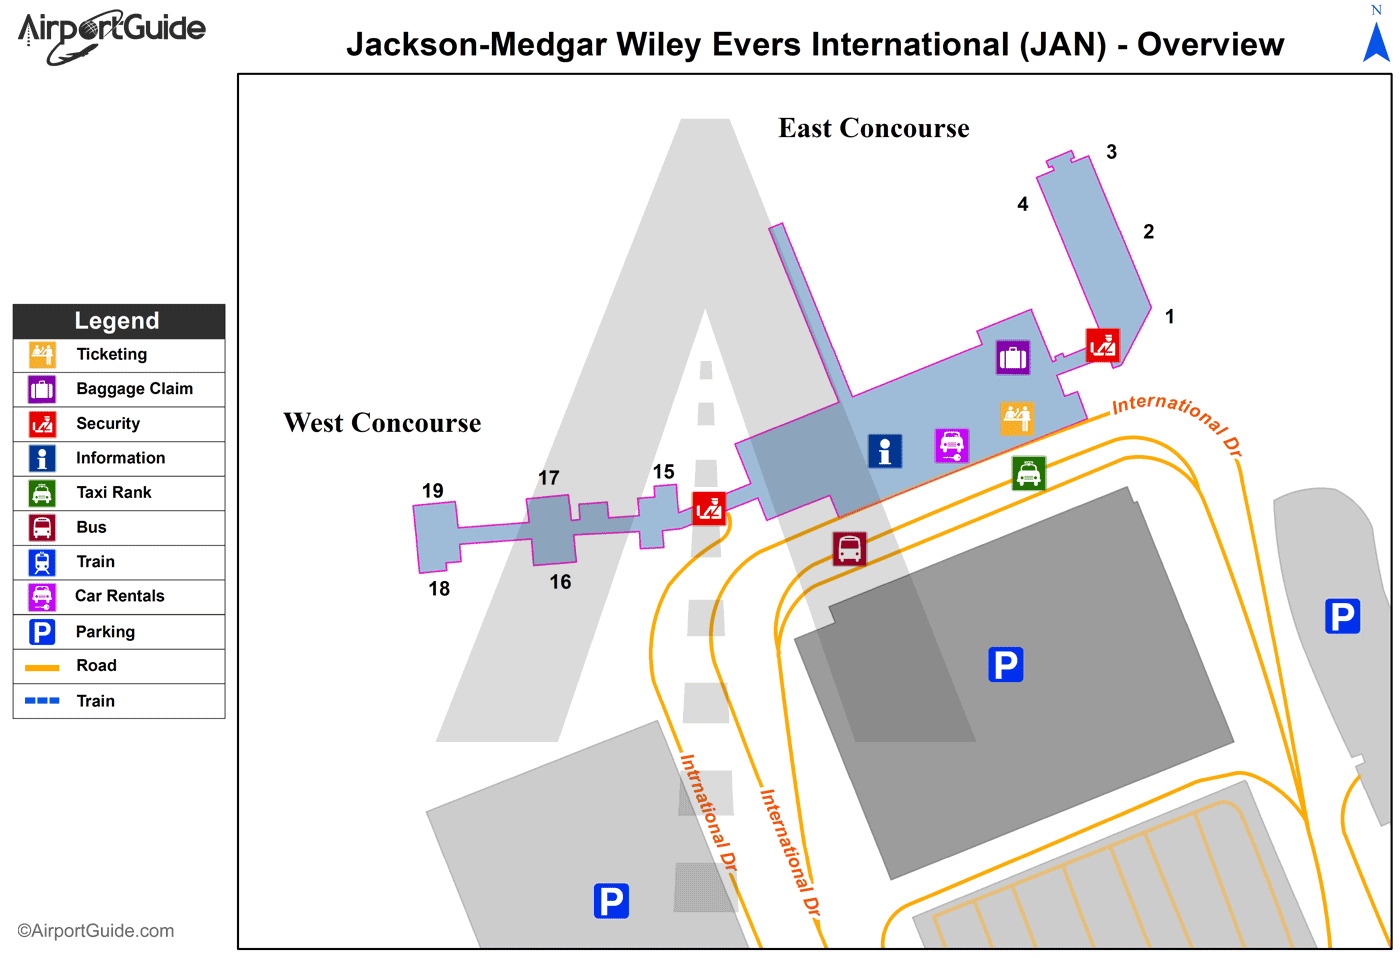 Jackson - Jackson-Medgar Wiley Evers International (JAN) Airport Terminal Map - Overview